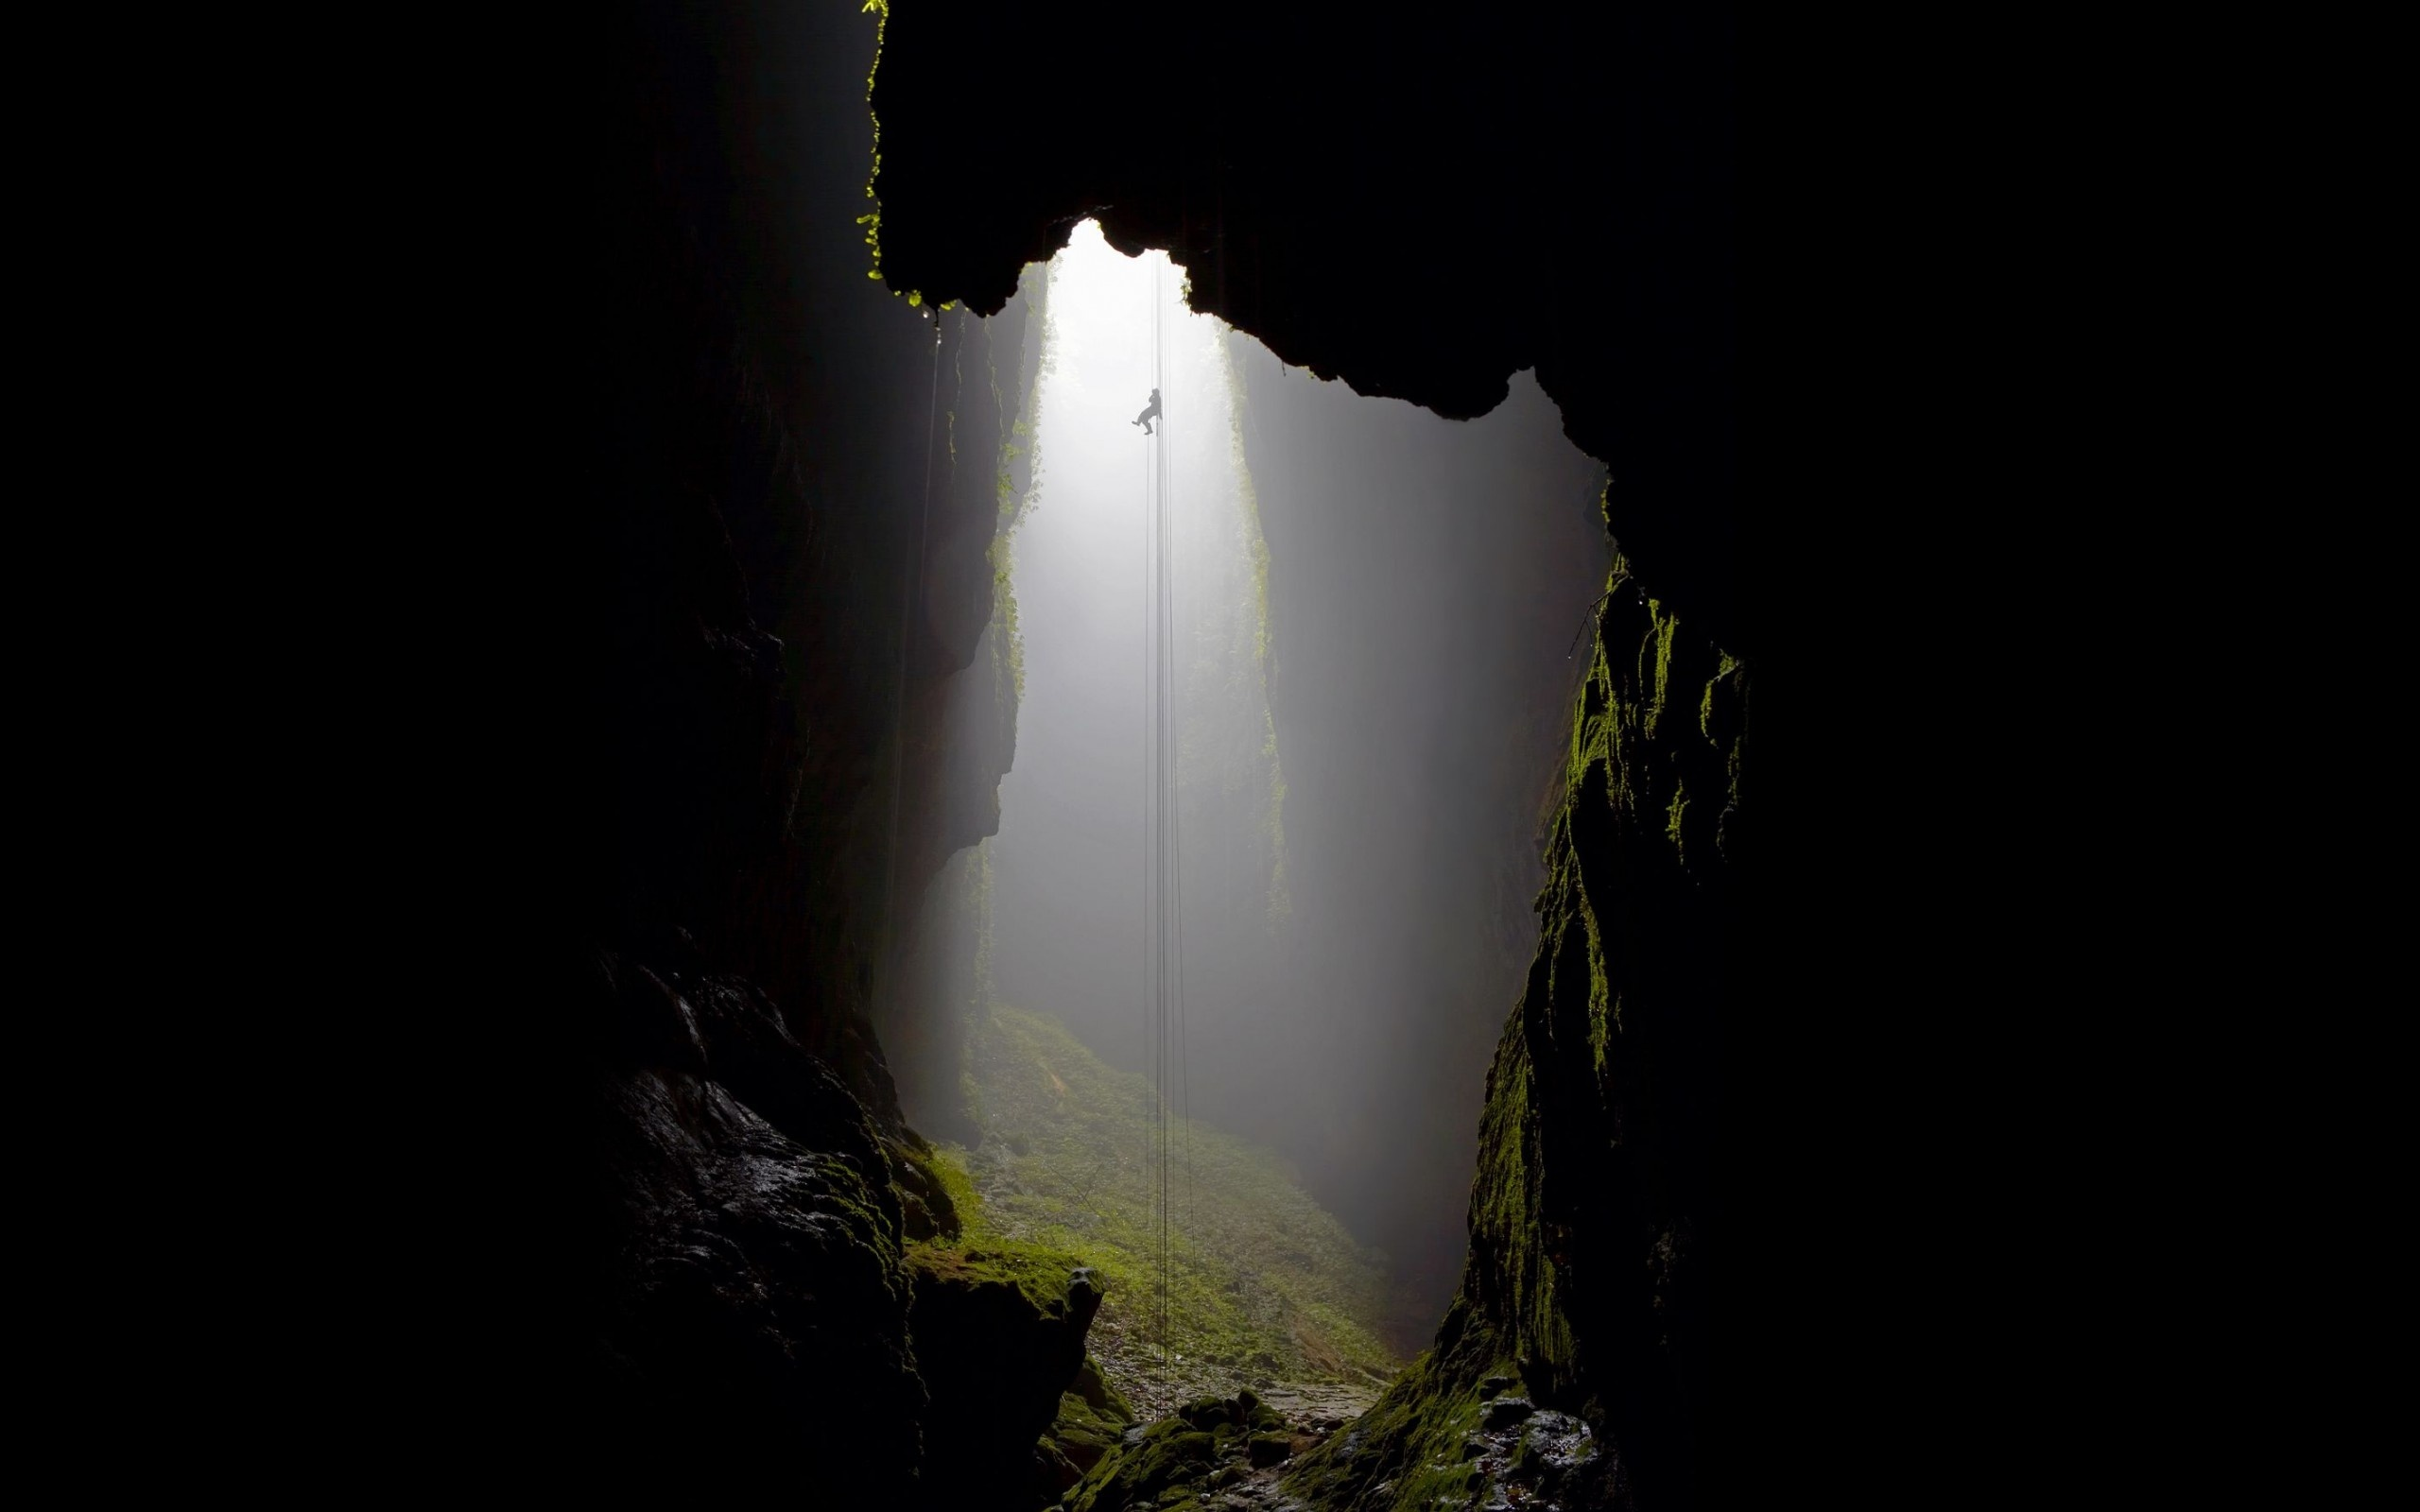 cave expedition Wallpaper Background 23403 2560x1600